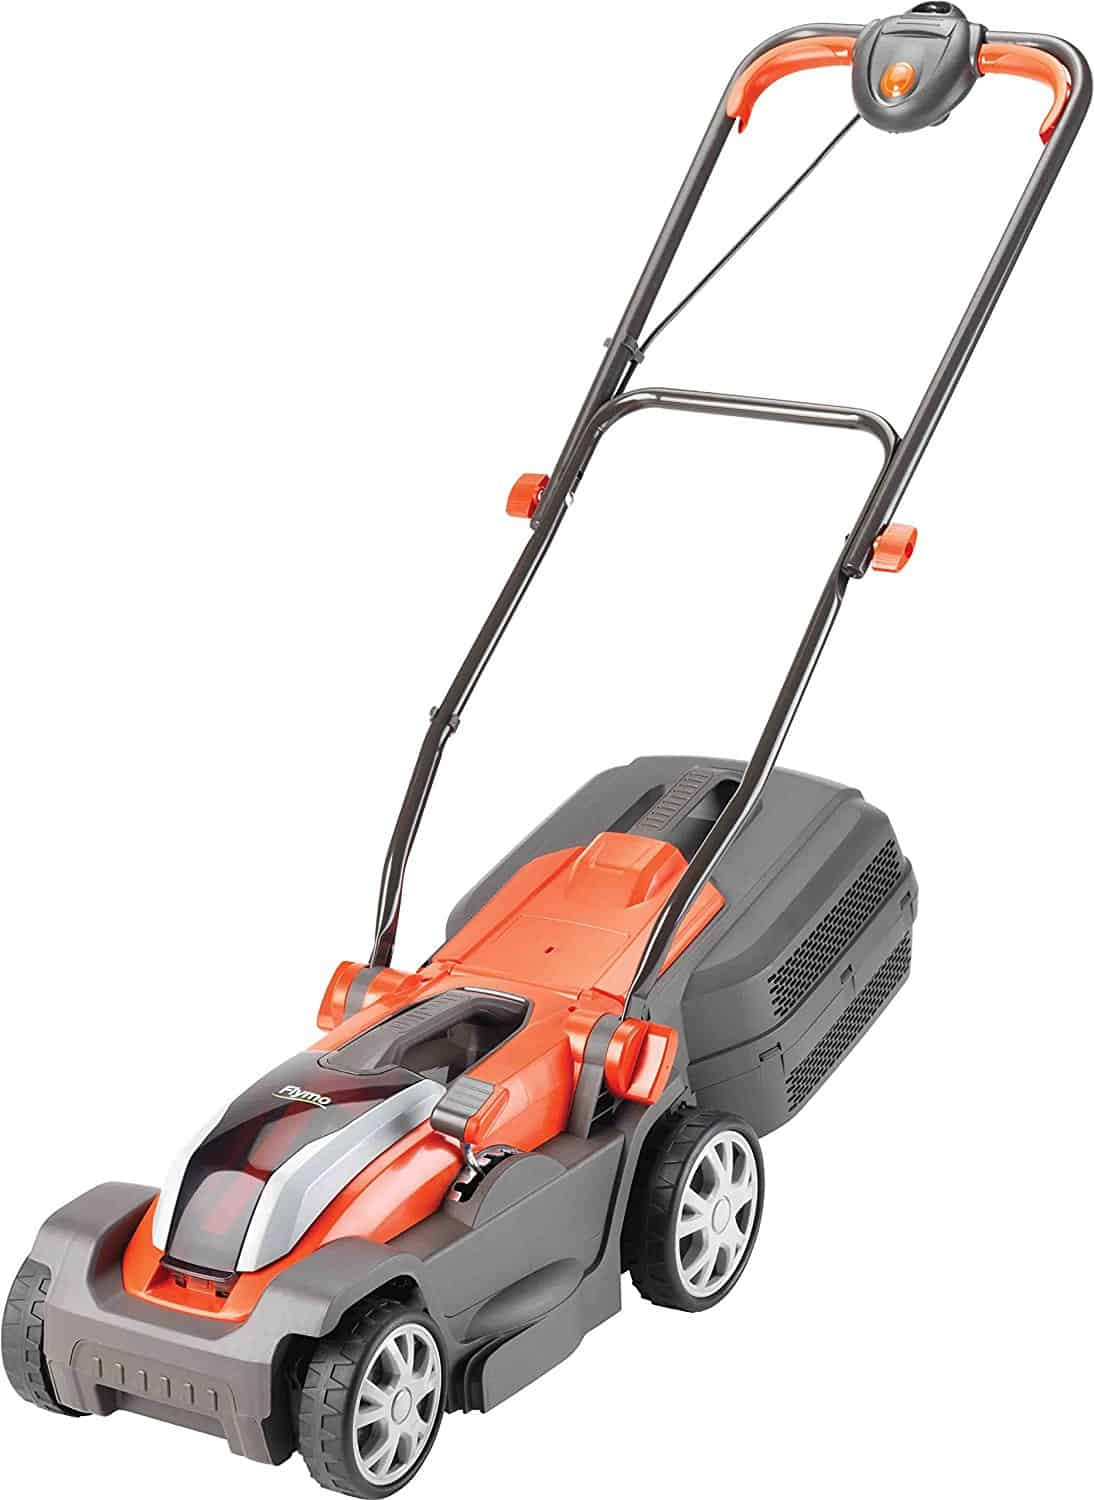 Best Cordless Electric Lawn Mower – Flymo